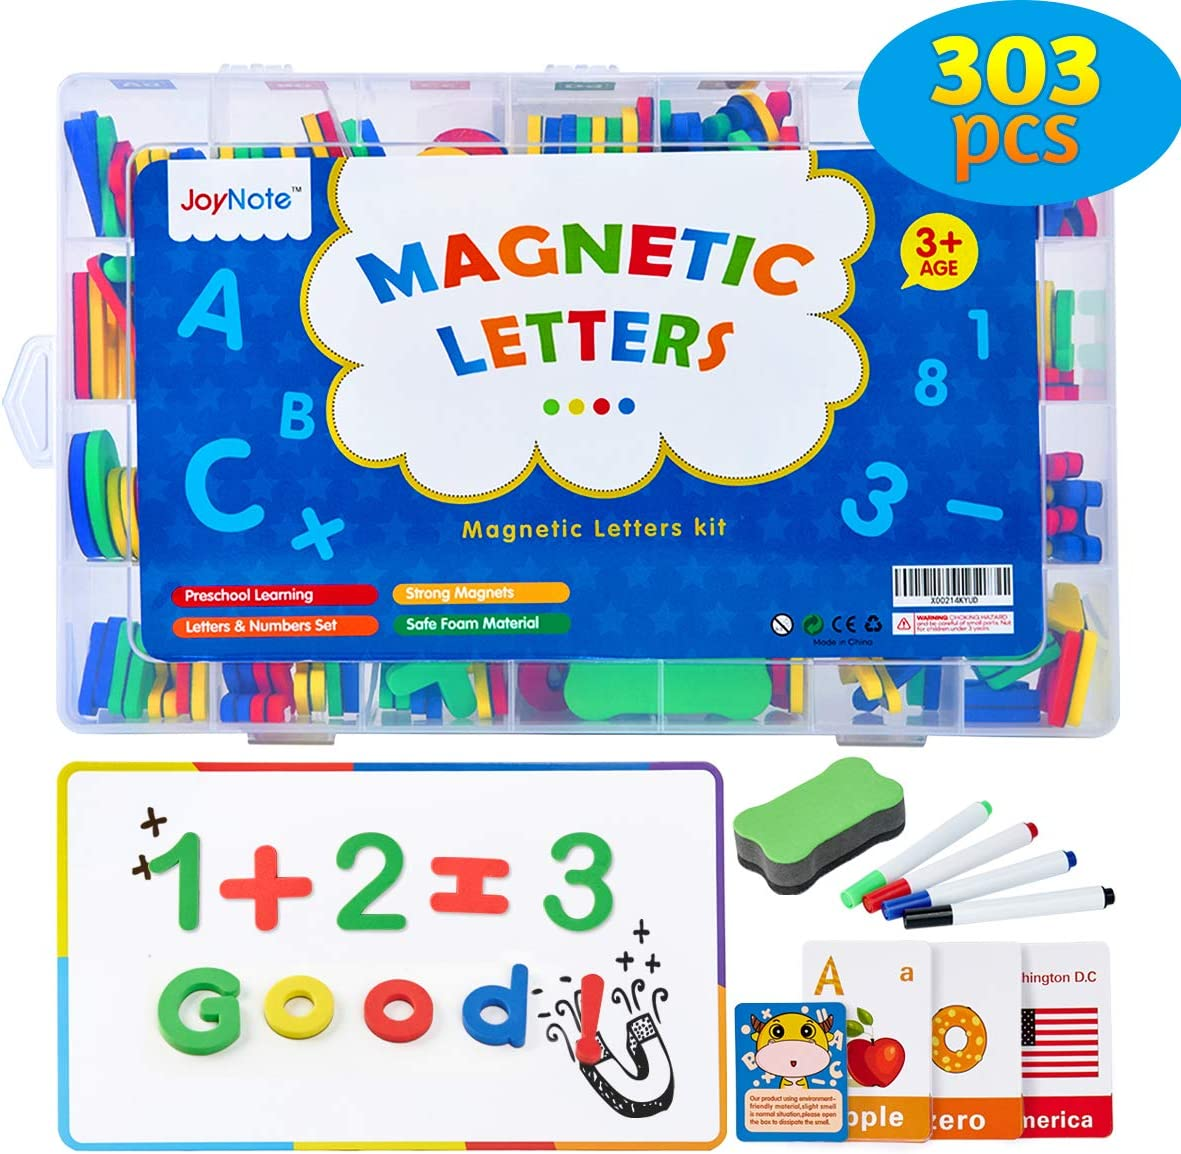 Magnetic Letters Set, 303 Pcs Alphabet Magnets Kit for Kids, Refrigerator Letters with Double-Side Magnet Board and Storage Box, Educational Toy Set for Kids Learning Spelling